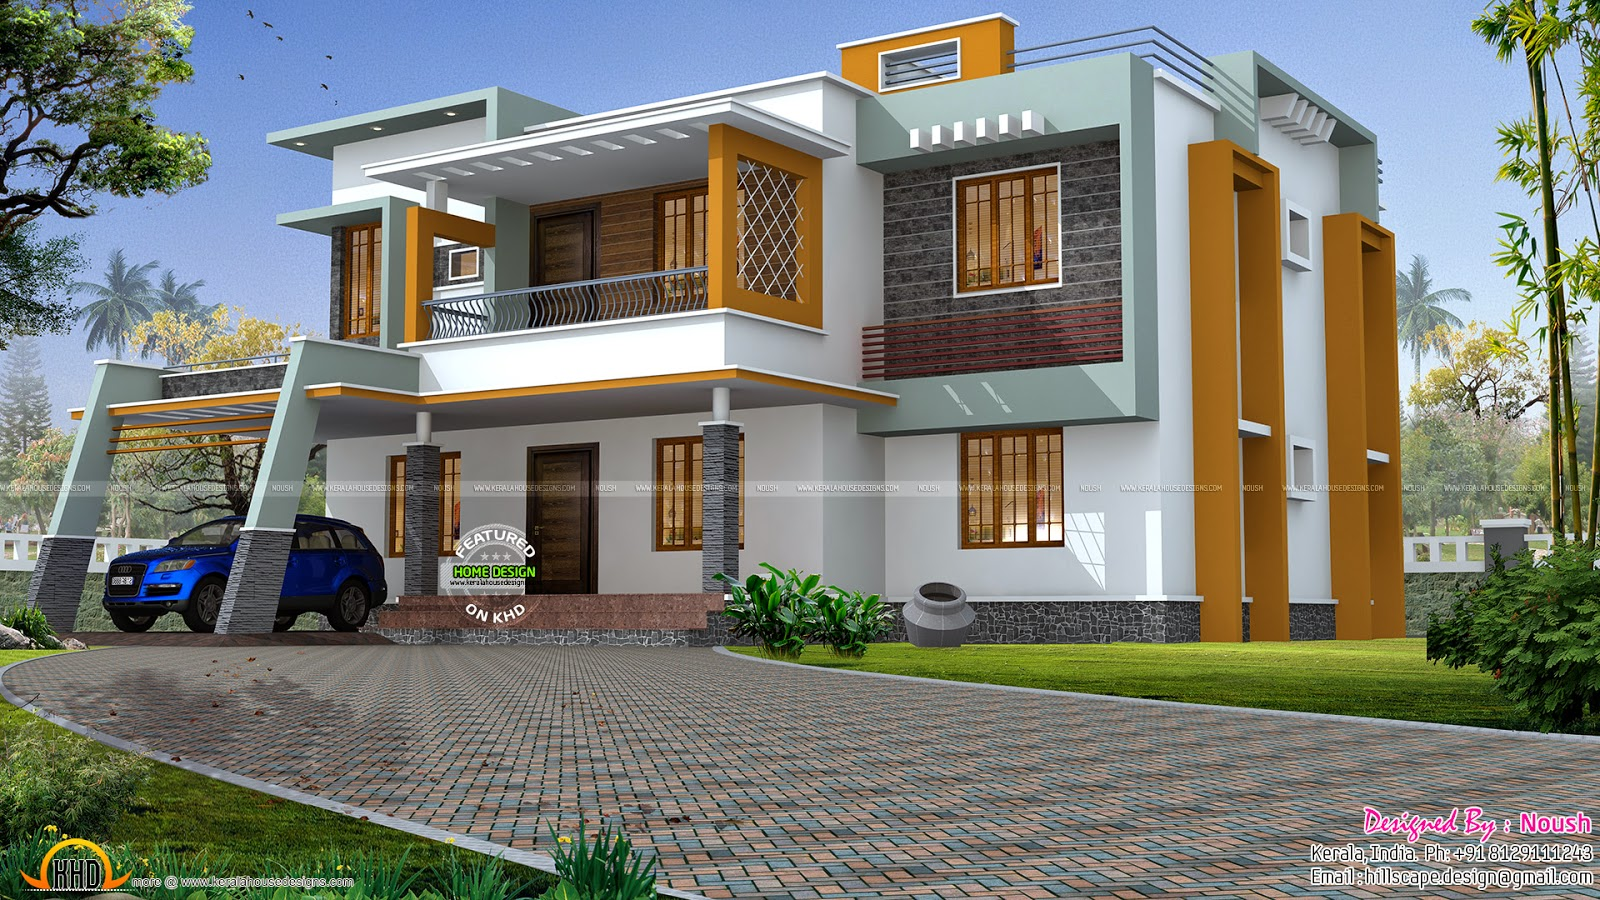 new home designs box style house kerala home design and floor plans 14357